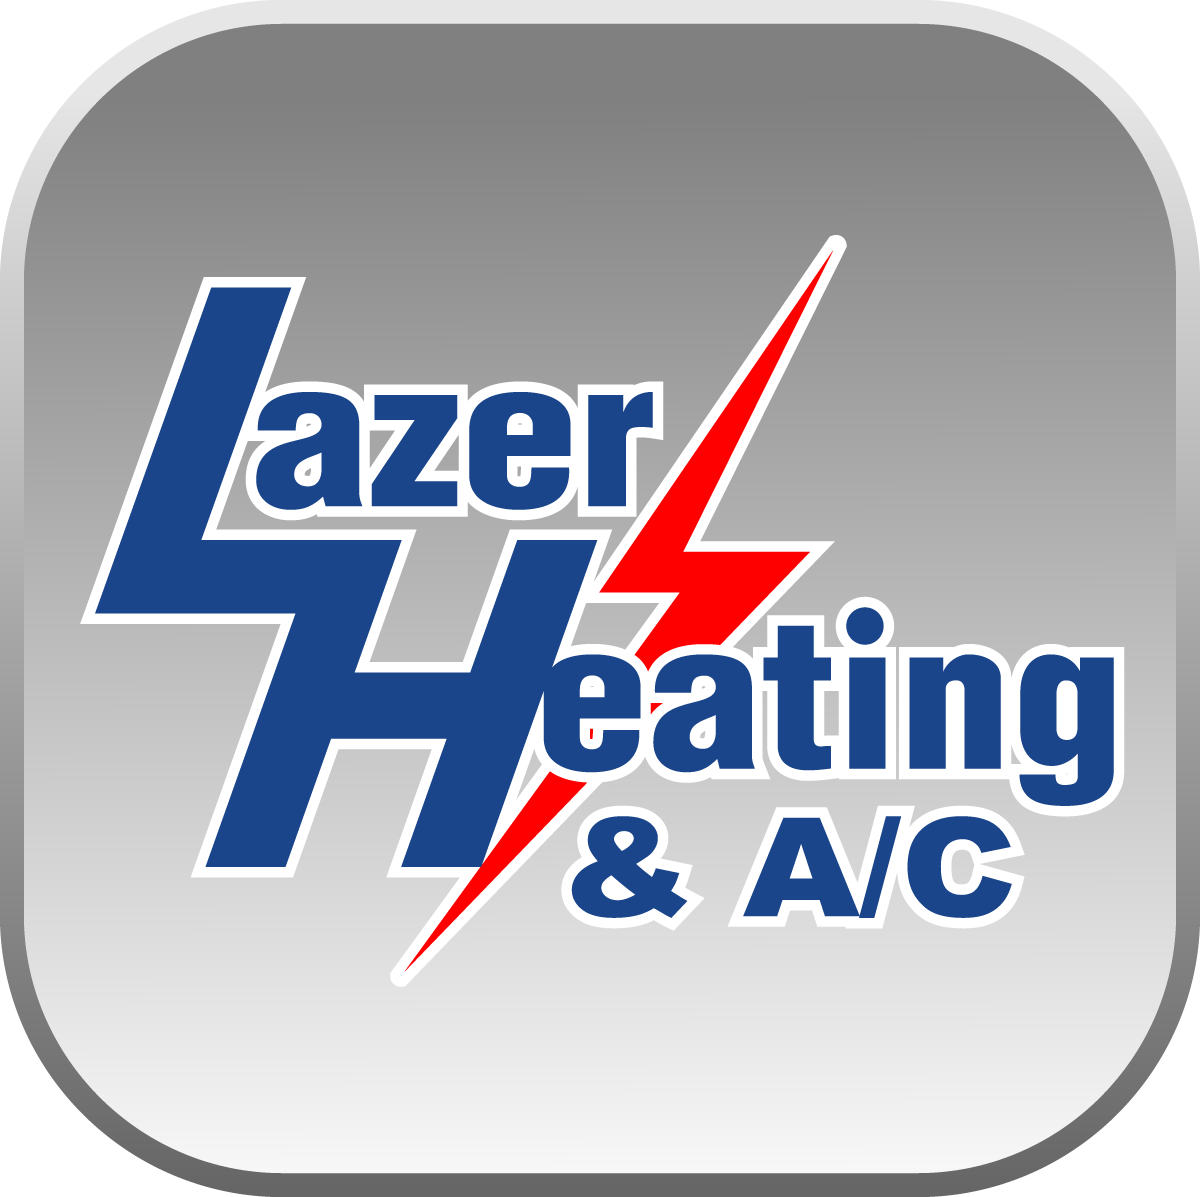 Lazer Heating & A/C